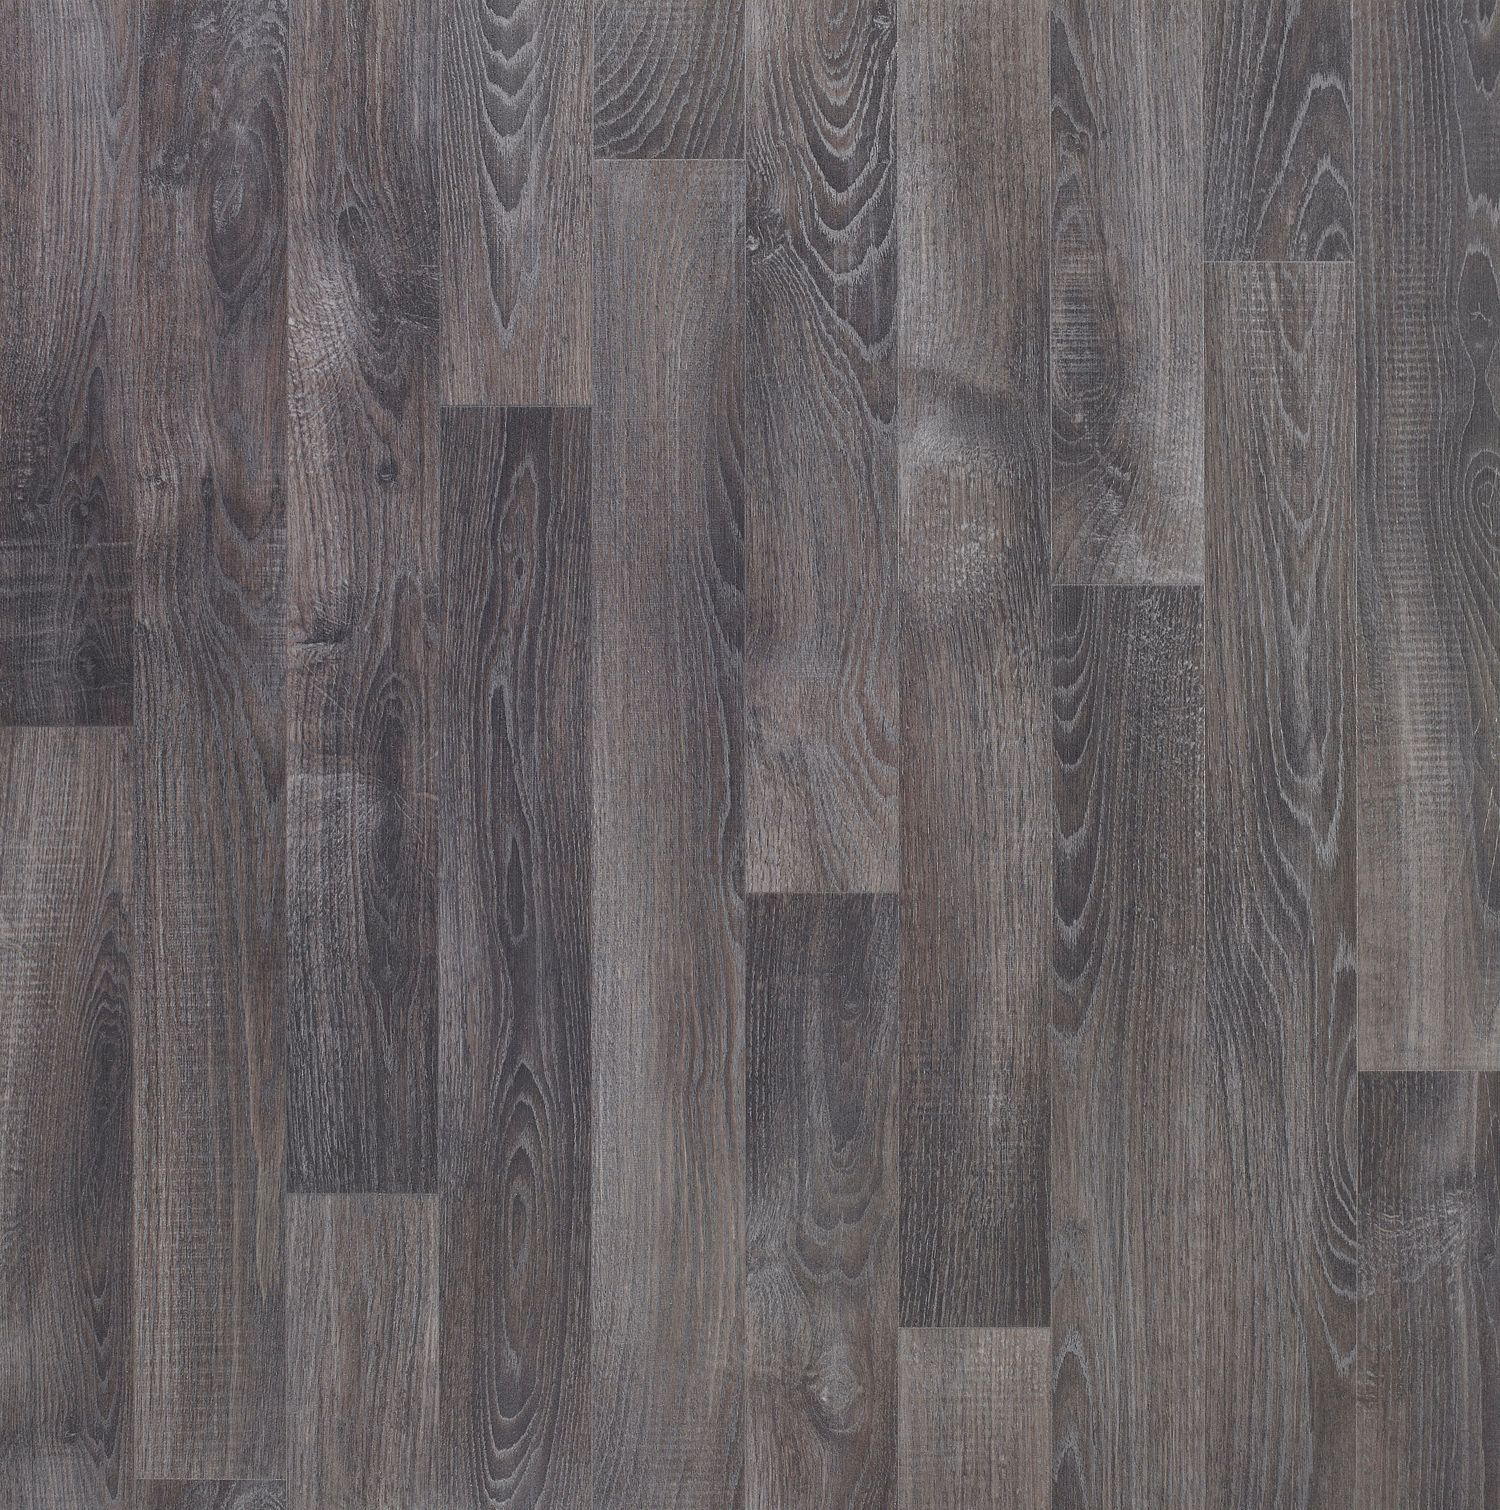 Dark Grey Oak Effect Vinyl Flooring 4 M Departments